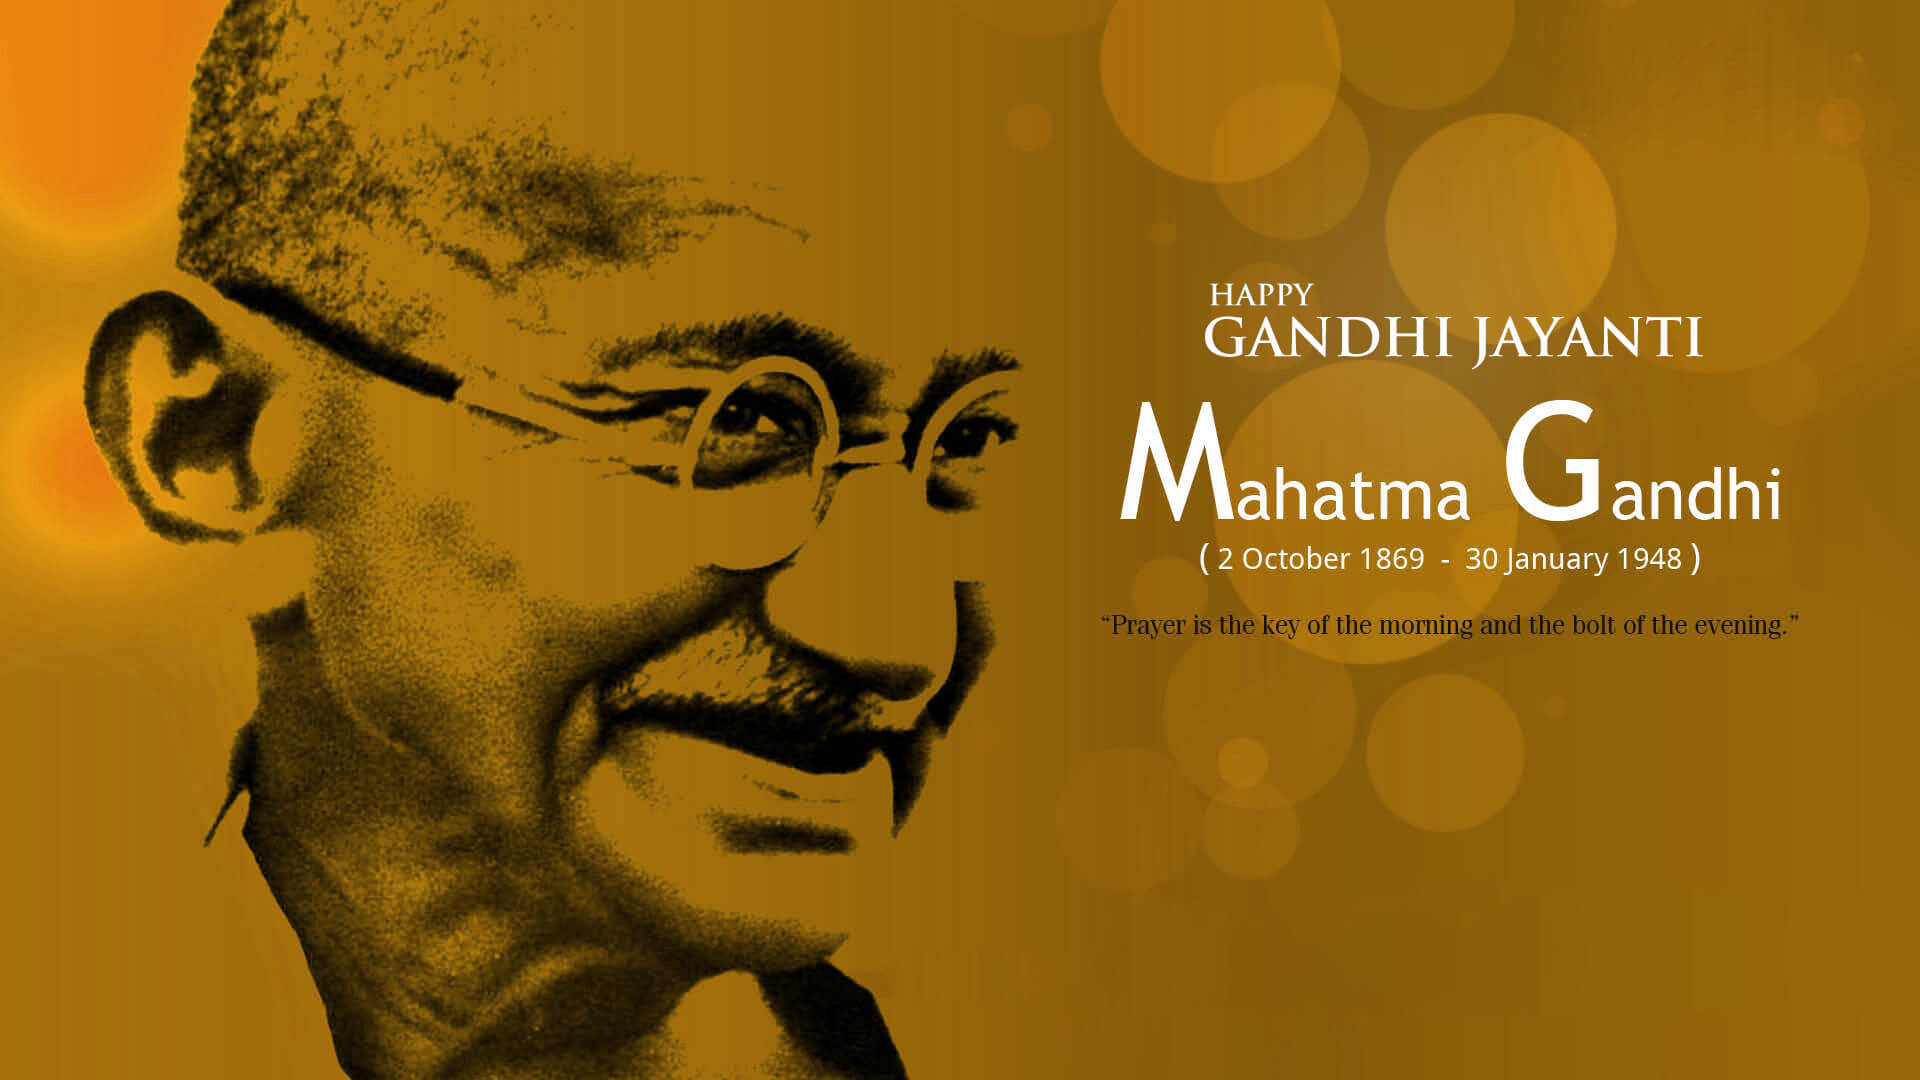 gandhi jayanti october 2 latest hd wallpaper